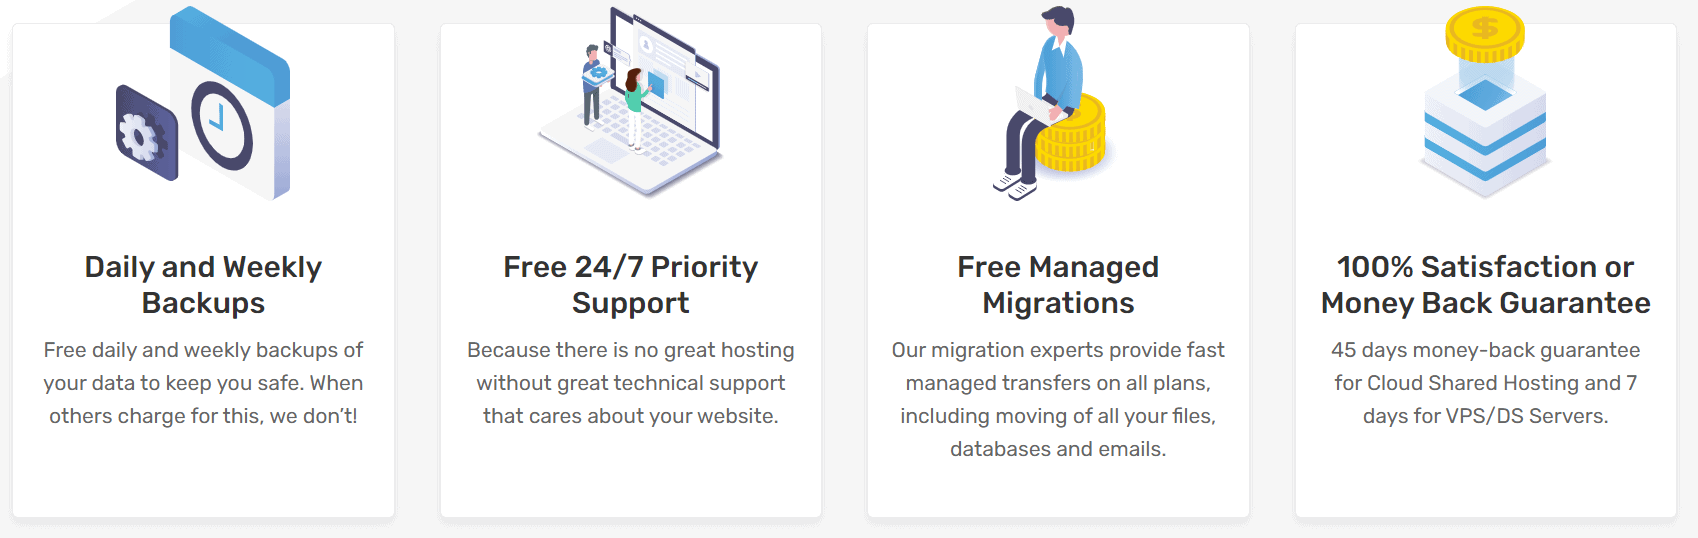 FastComet-Managed-Cloud-Hosting-with-24-7-Support